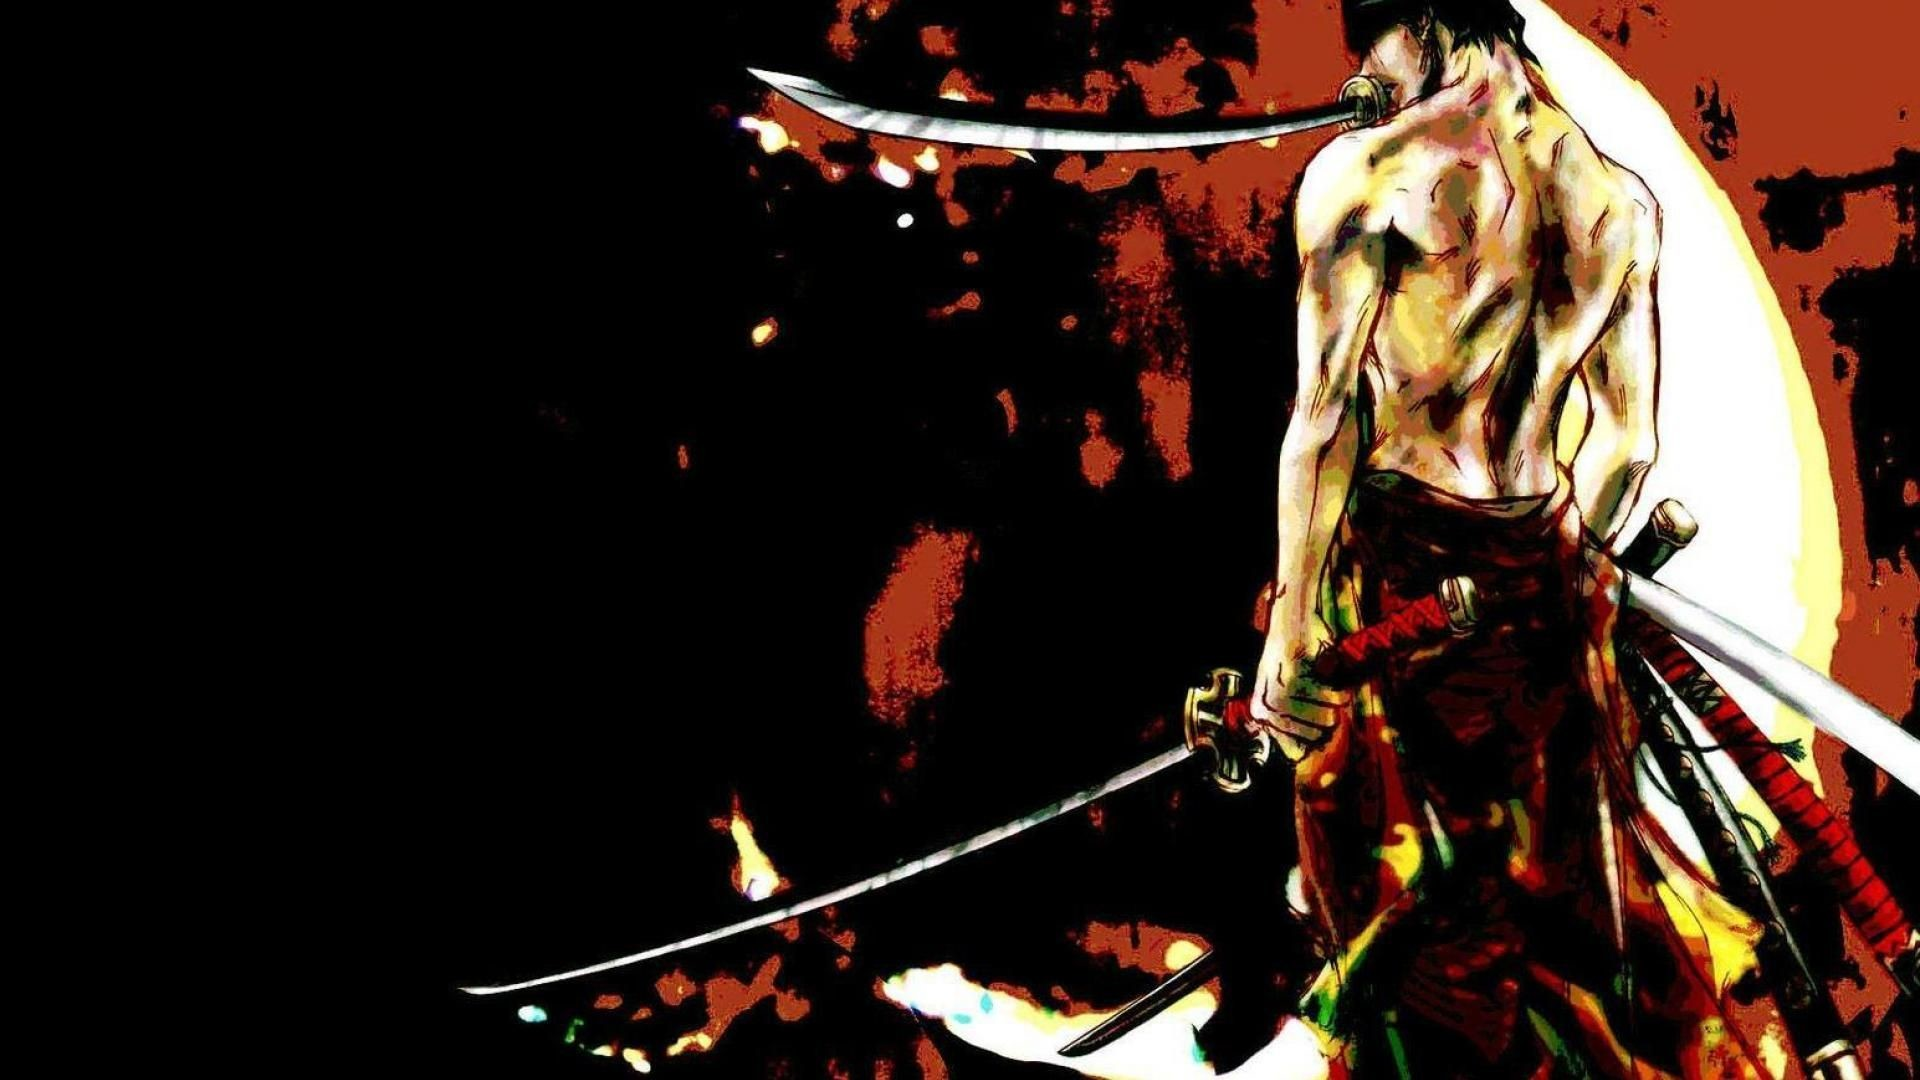 1920x1080 Images For Gt One Piece Wallpaper Zoro Roronoa Zoro Wallpaper Iphone   Live New World Widescreen Cool Swords Epic ~ Wallpedes | Free HD  Wallpaper ...